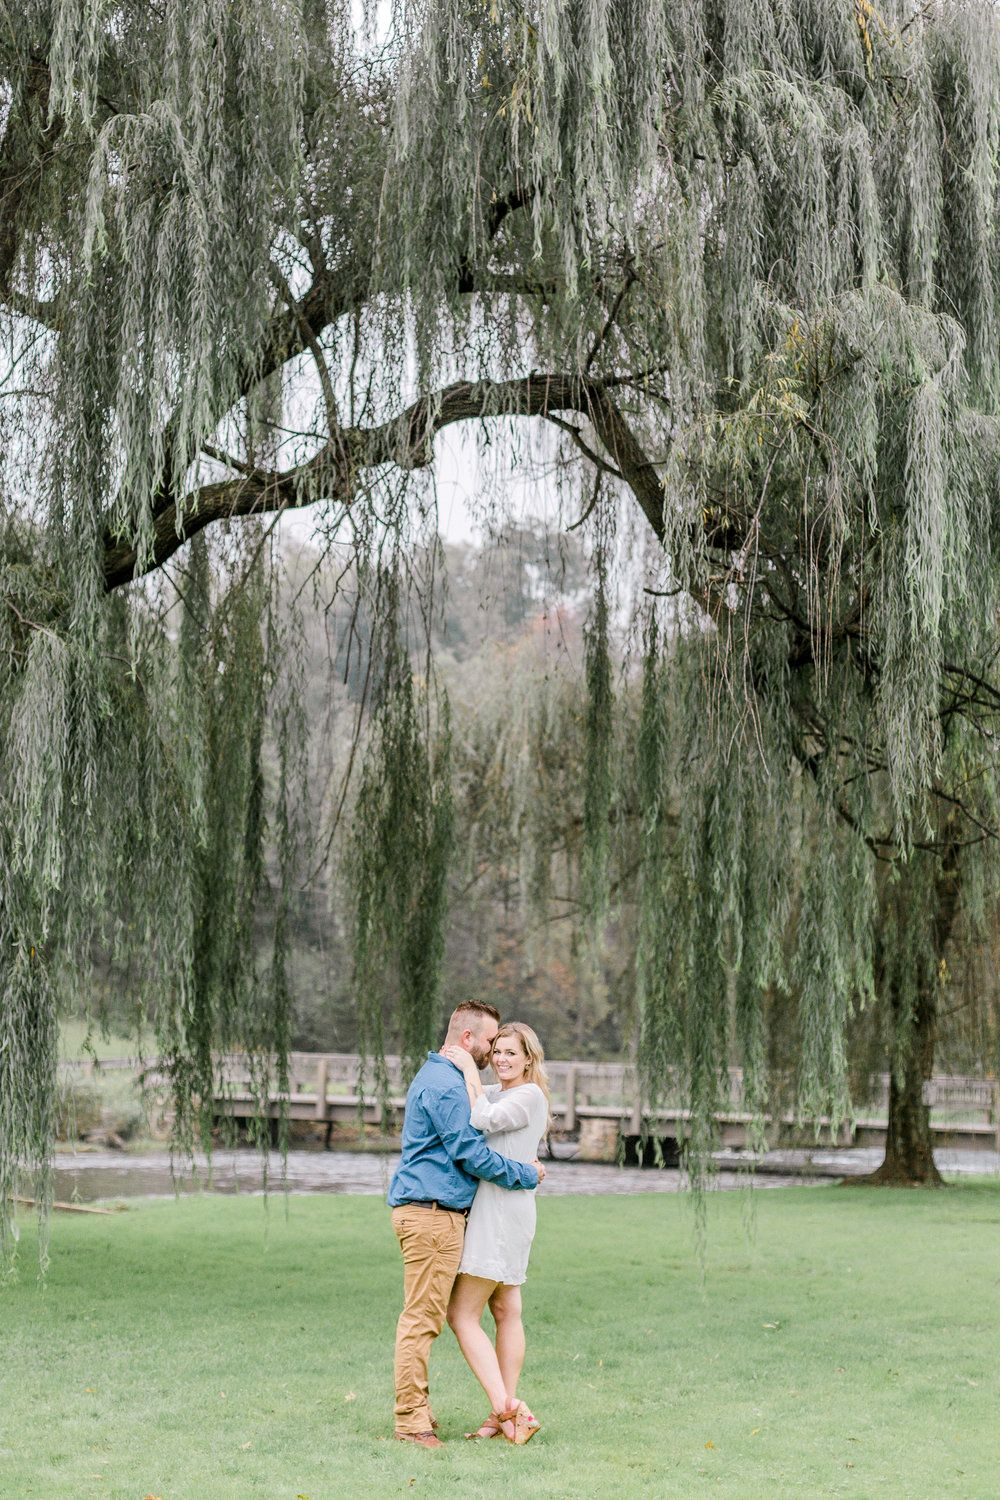 Li L Le Hi Trout Nursery Fish Hatchery Fall Engagement Session Lehigh Valley Wedding Photographer Lytle Photo Co Epic Weeping Willow Tree